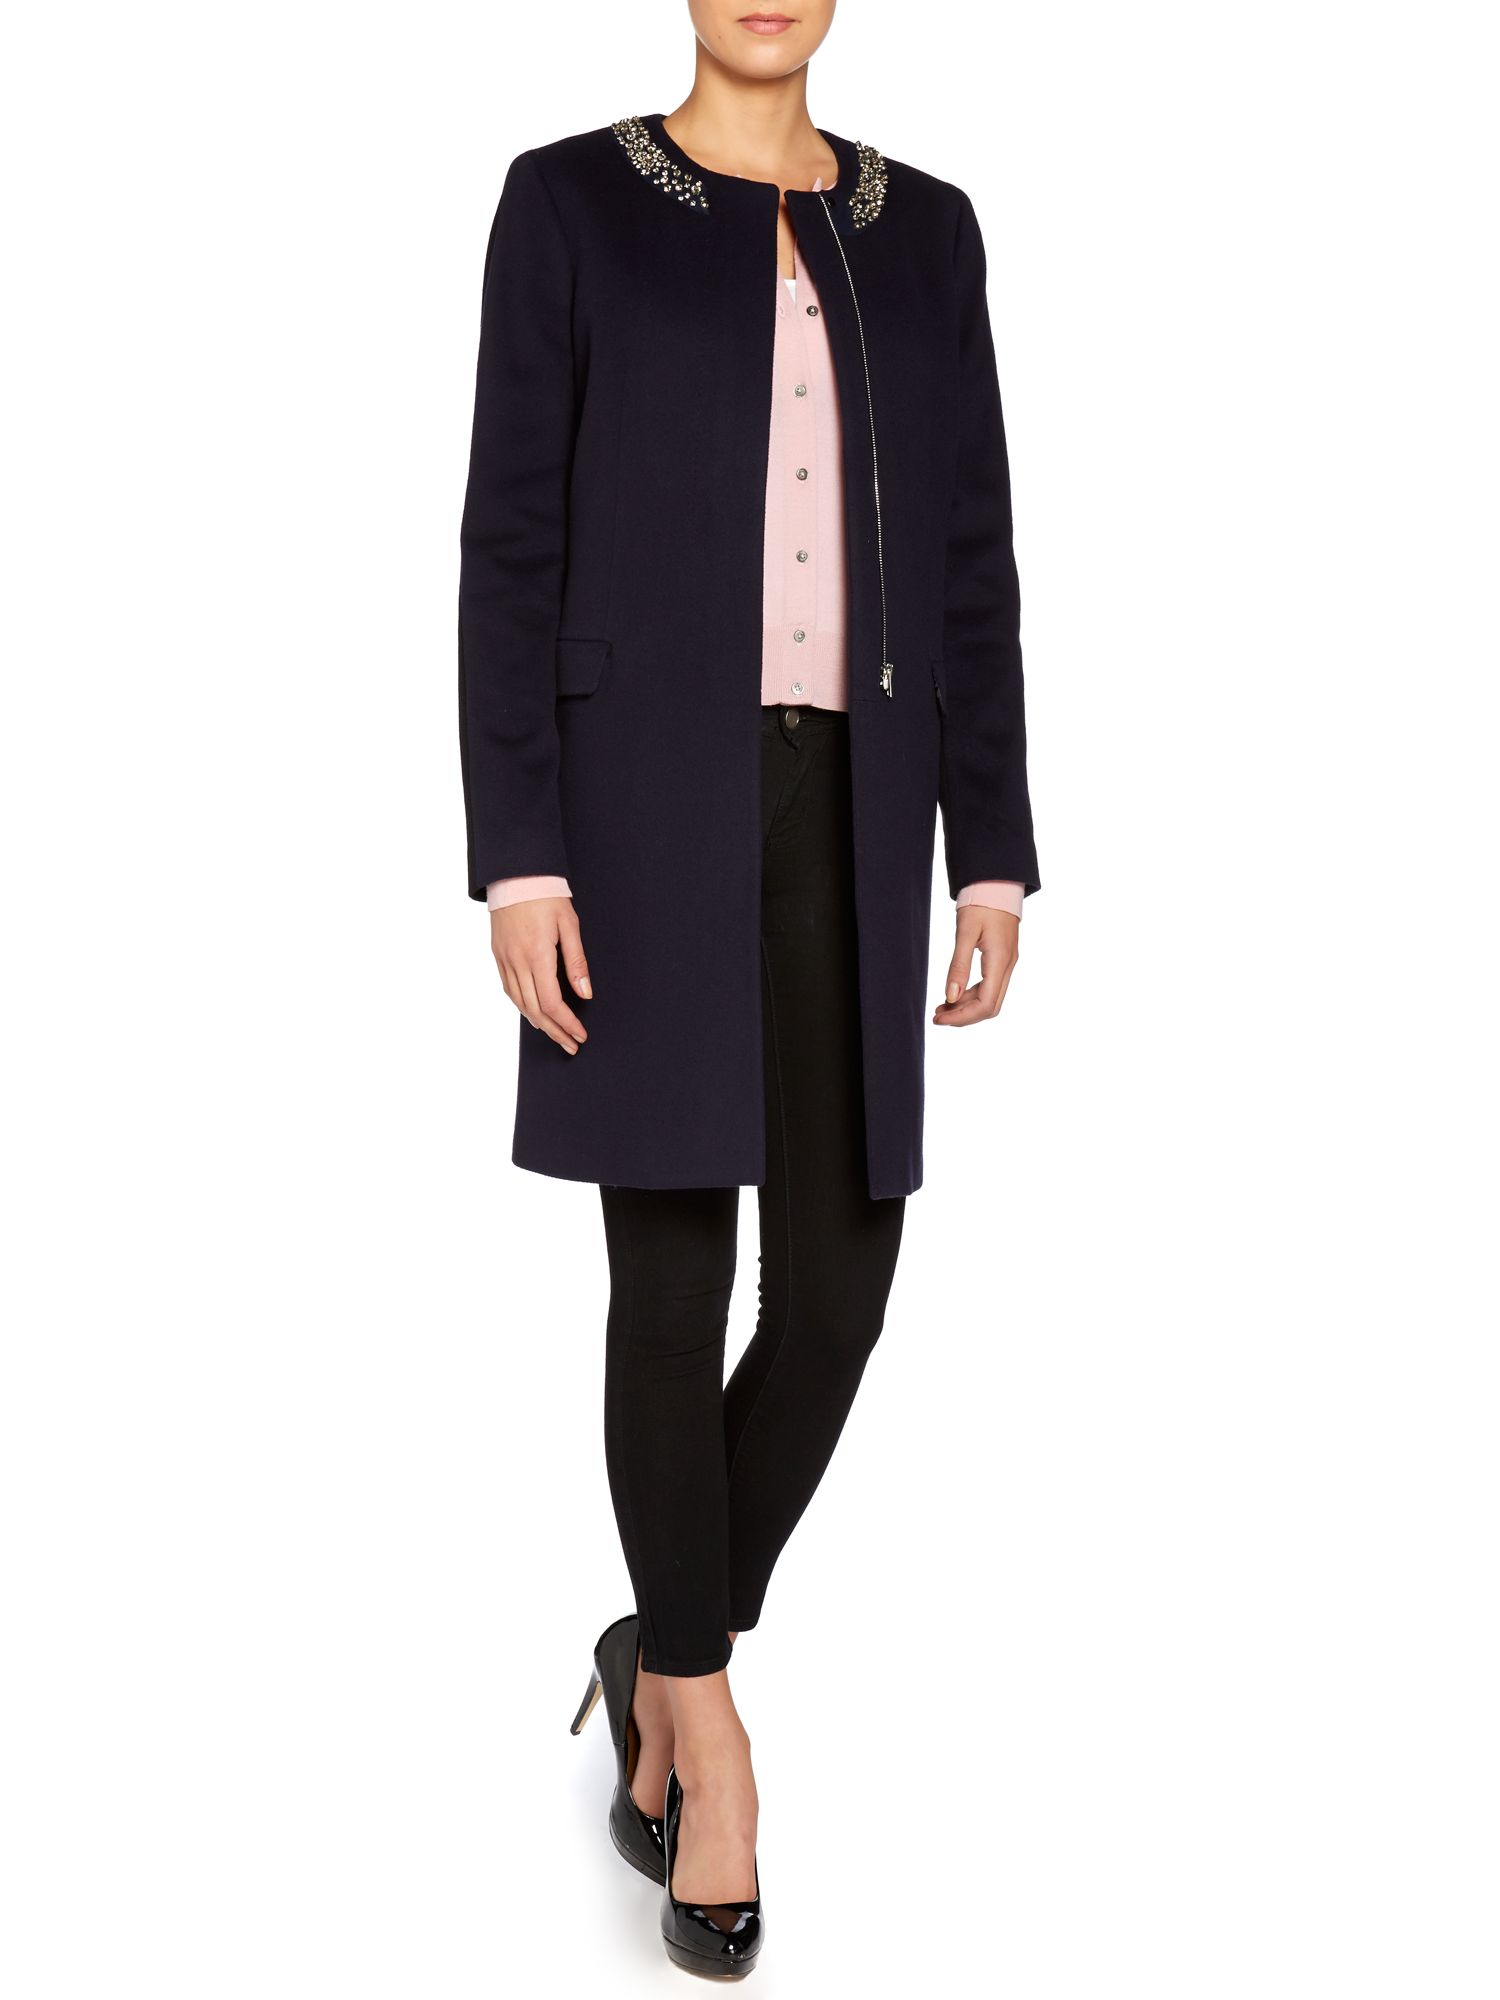 Wool dress coat with embellished collar